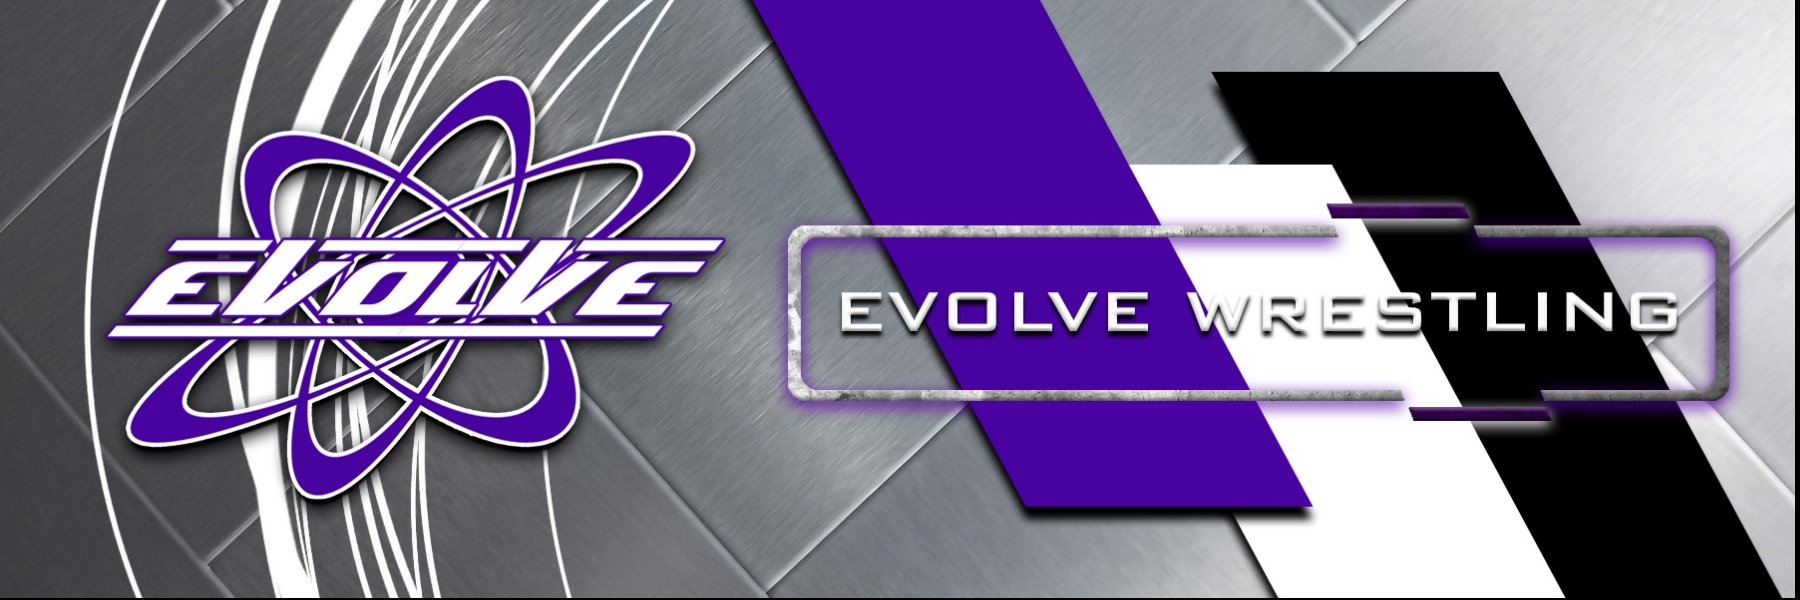 Evolve Wrestling! The flagship brand of the World Wrestling Network family!